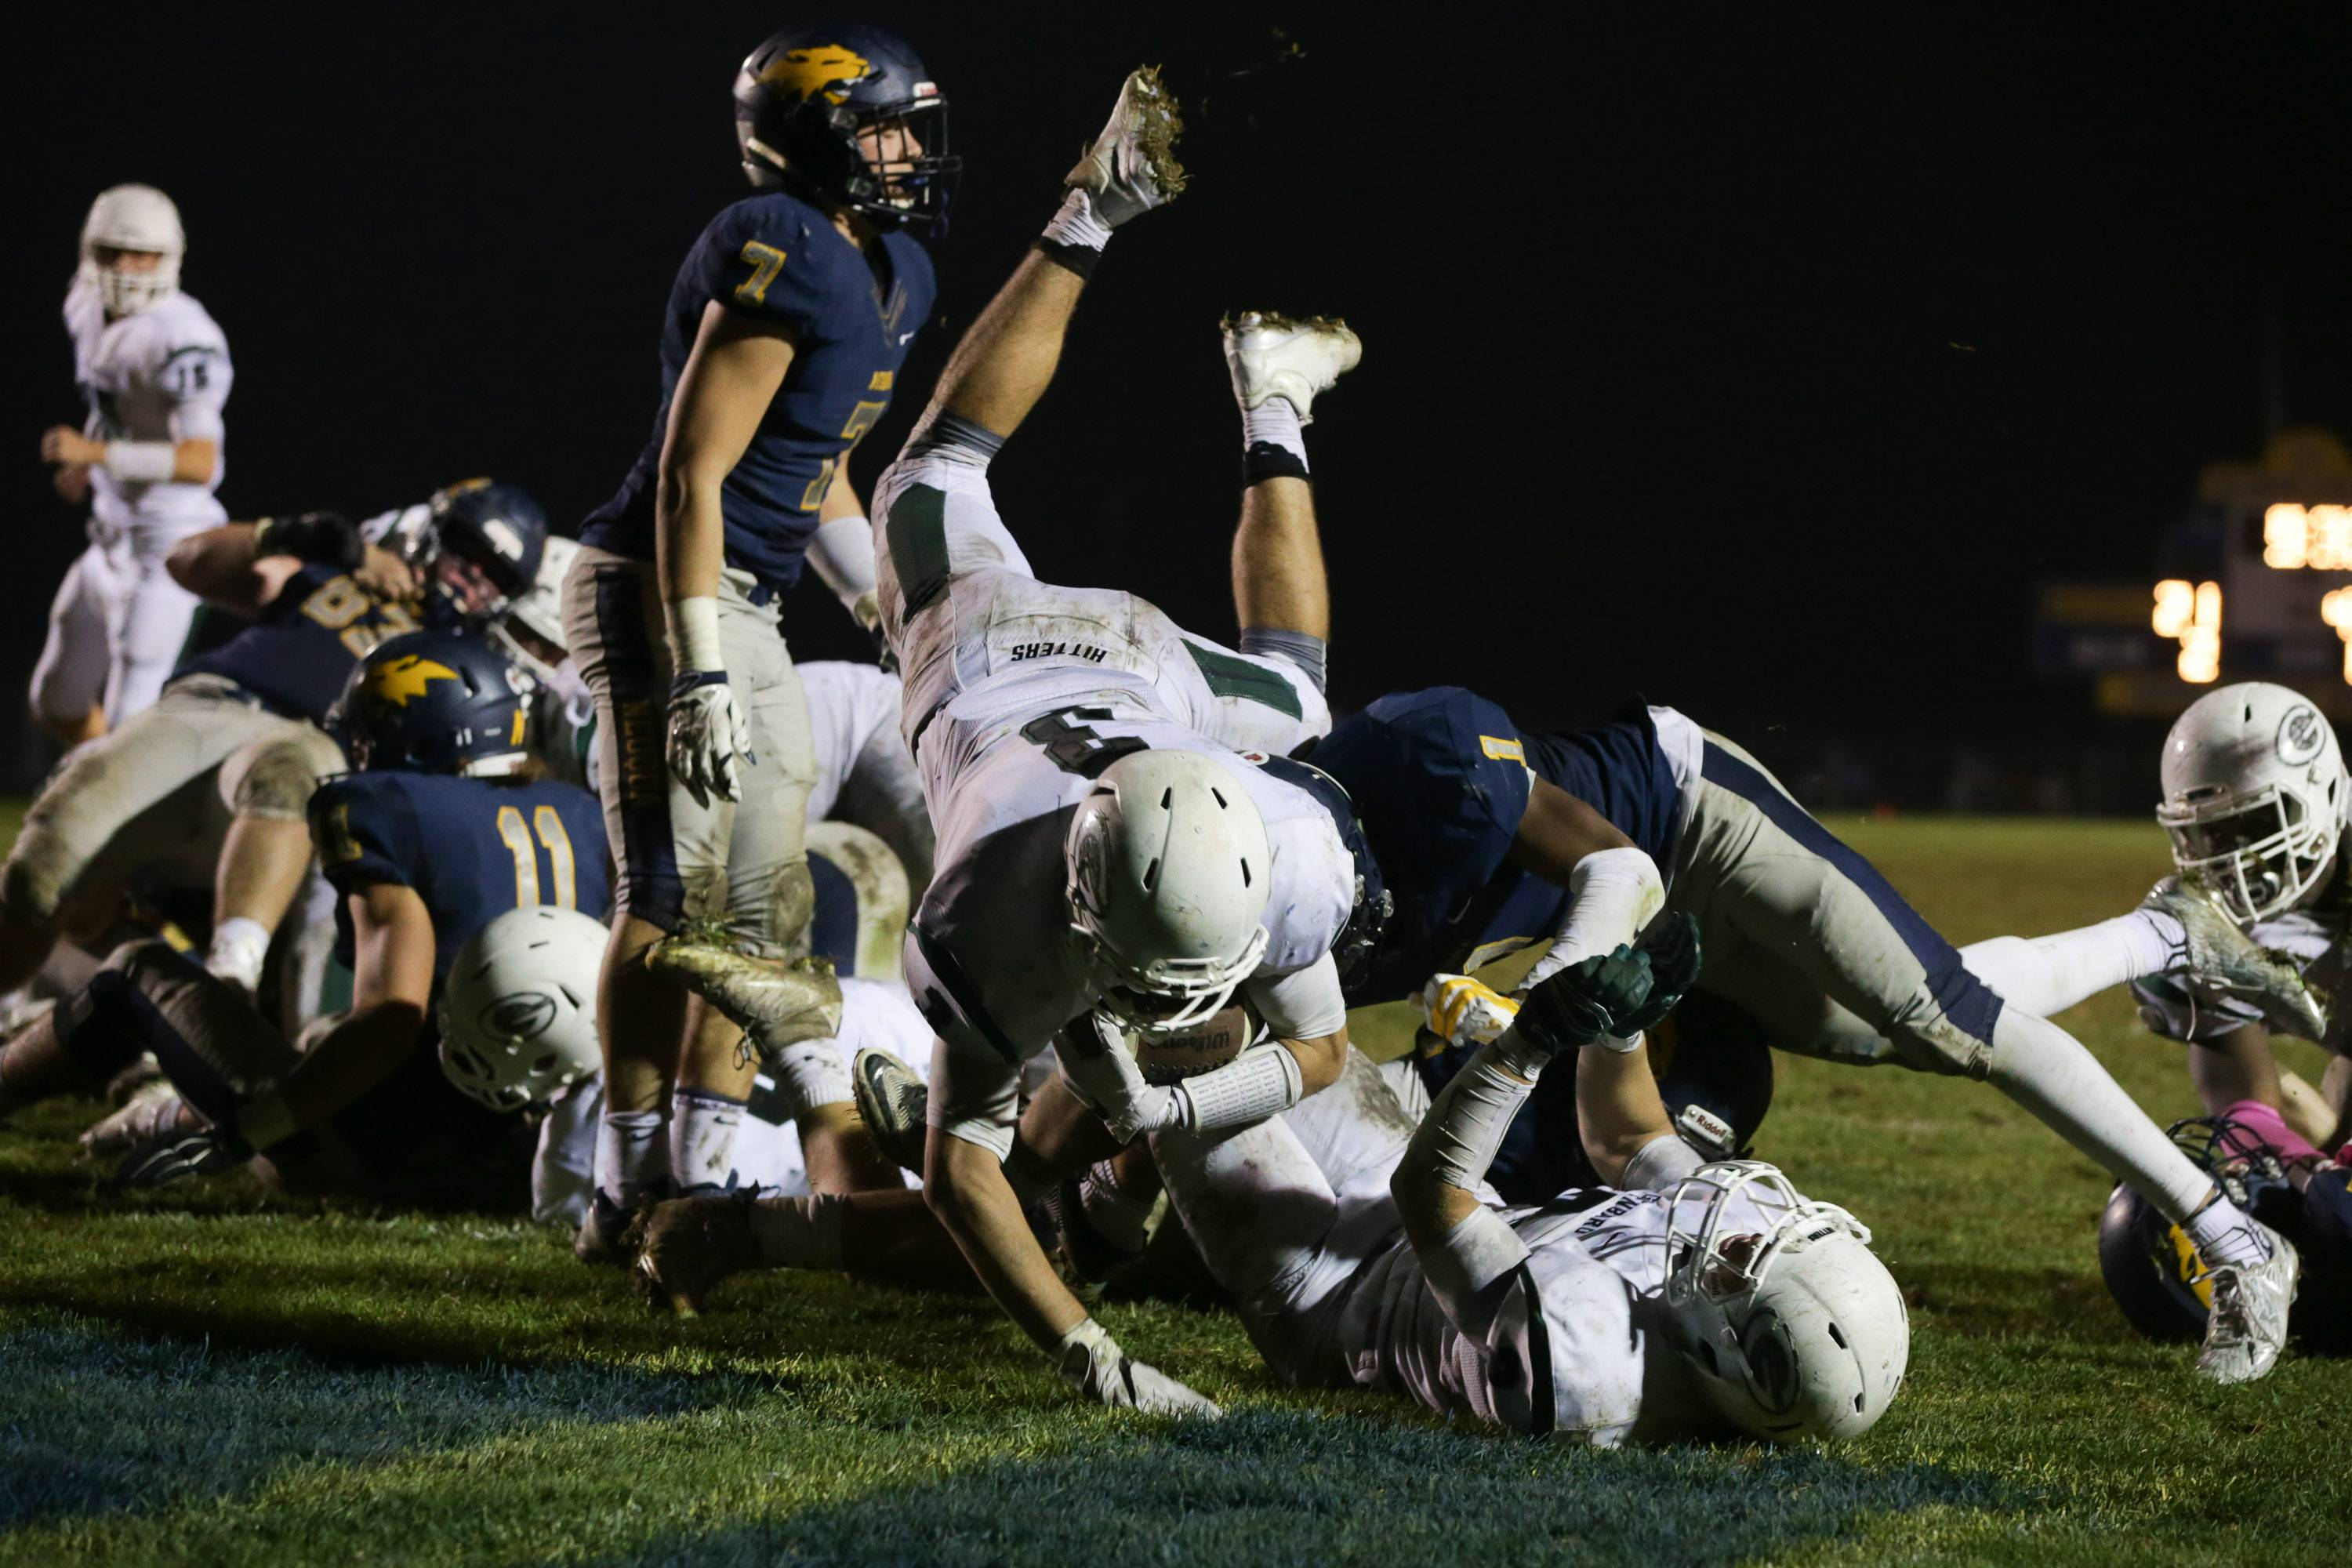 Glenbard West running back Jackson Goleash (3) dives in to the end zone for a touchdown against Neuqua Valley at Neuqua Valley High School in Naperville, IL on Saturday, October 29, 2016